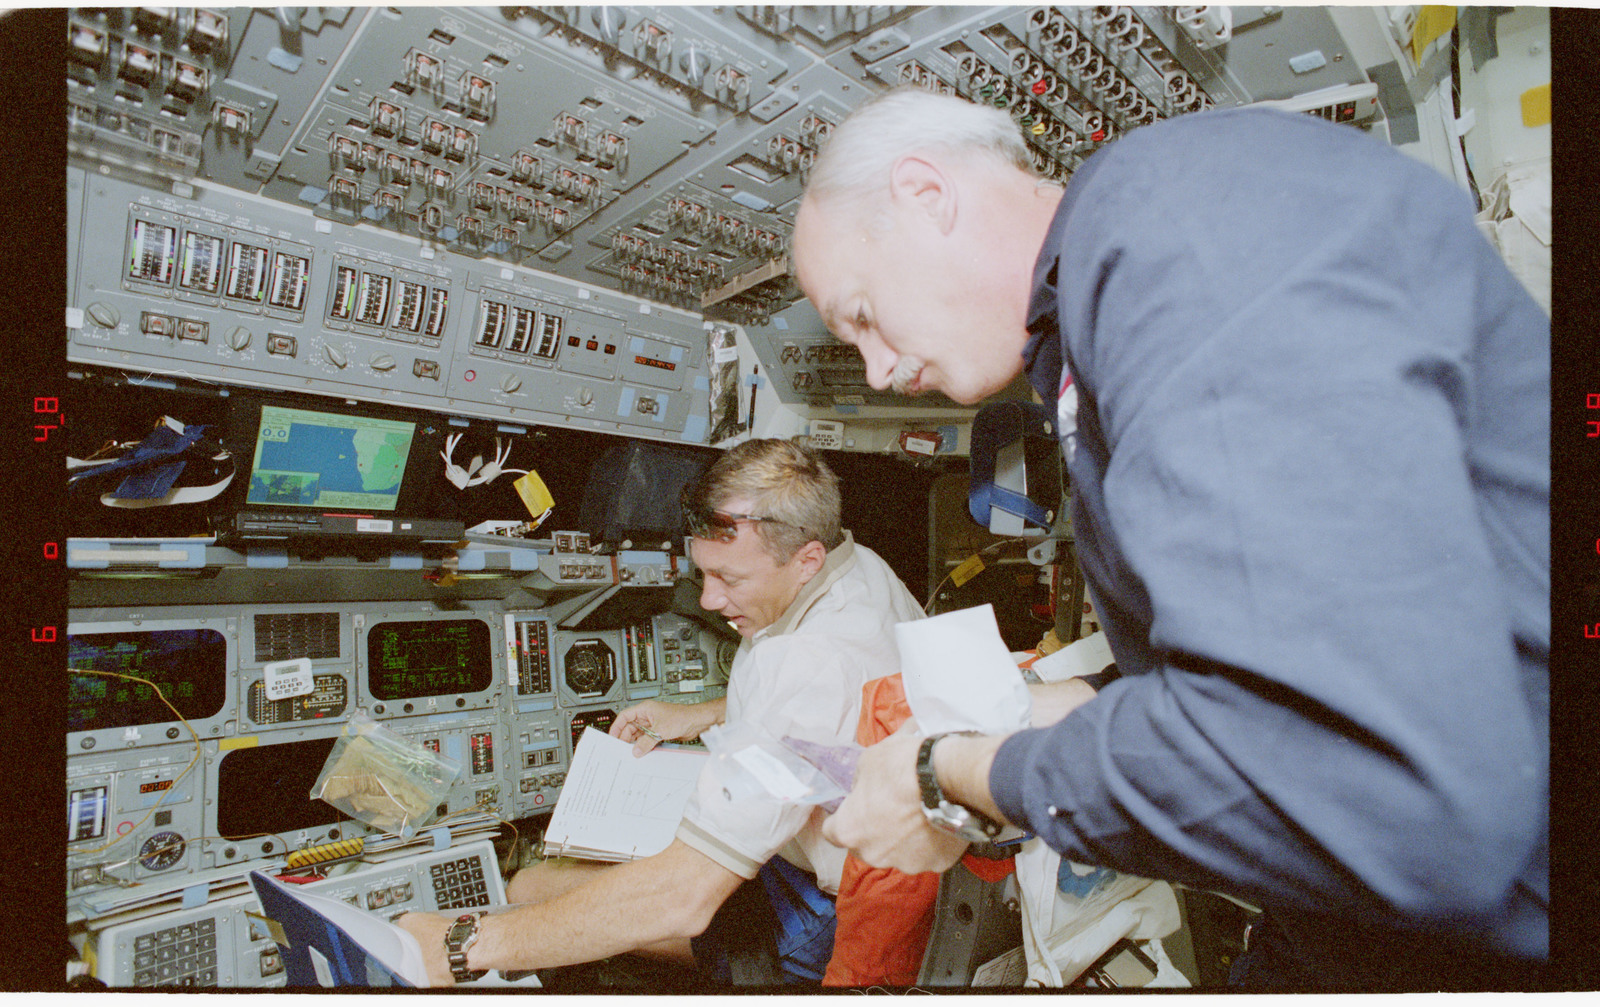 STS079-330-011 - STS-079 - STS-79 crew activities